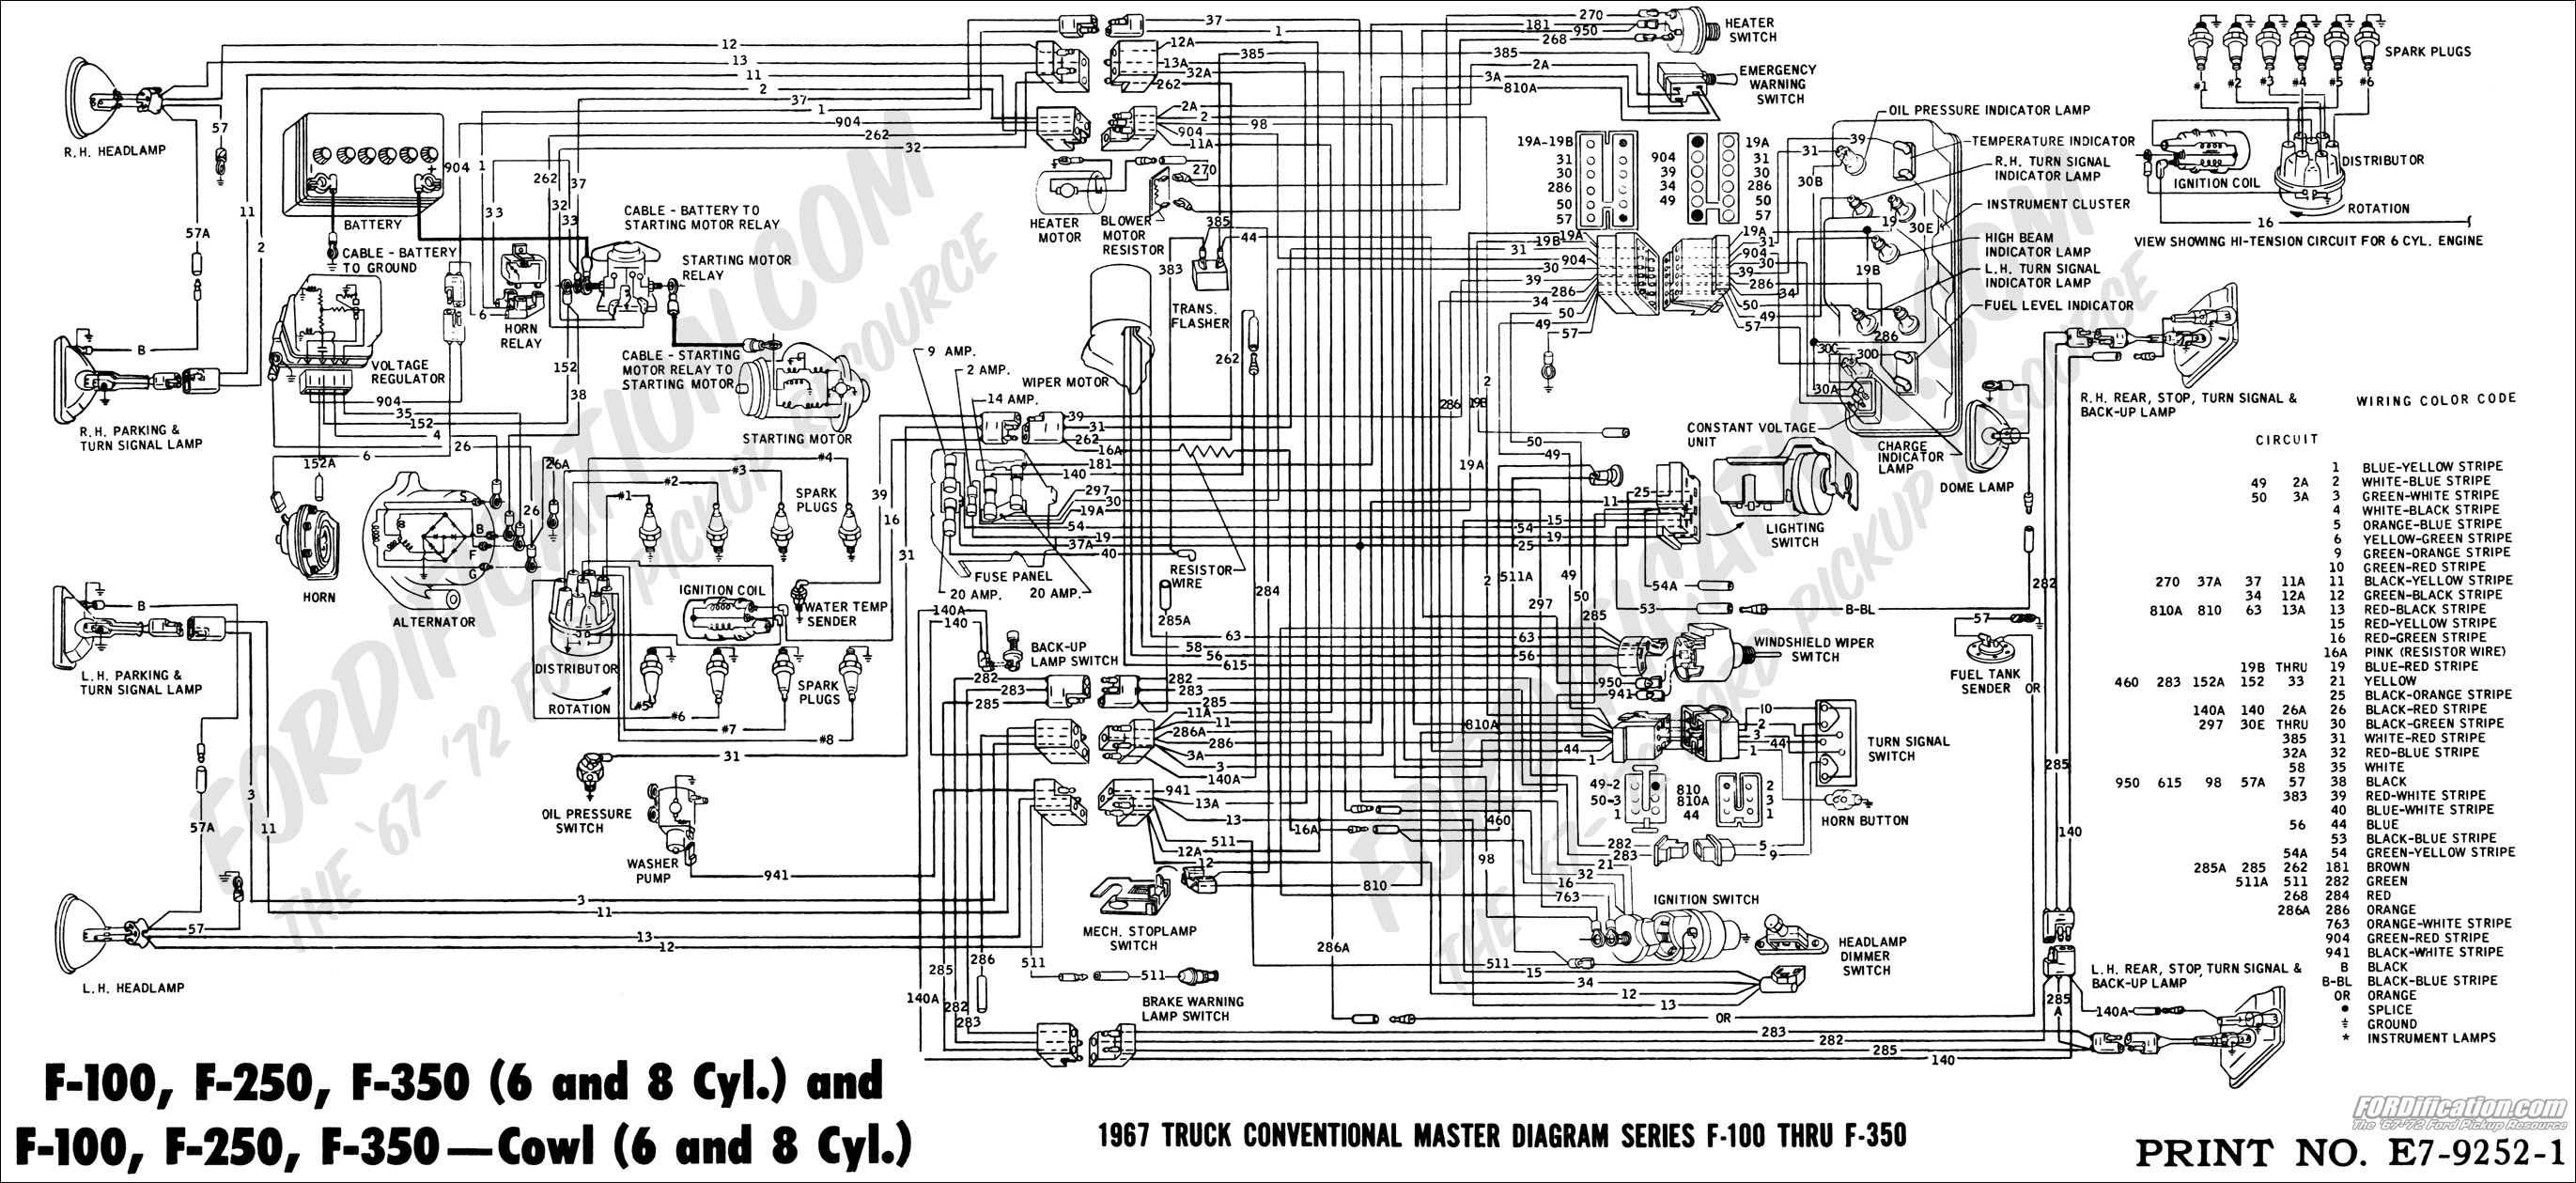 1970 Ford Truck Wiring Harness Diagram Third Level 69 Chevelle Wire Blog 1969